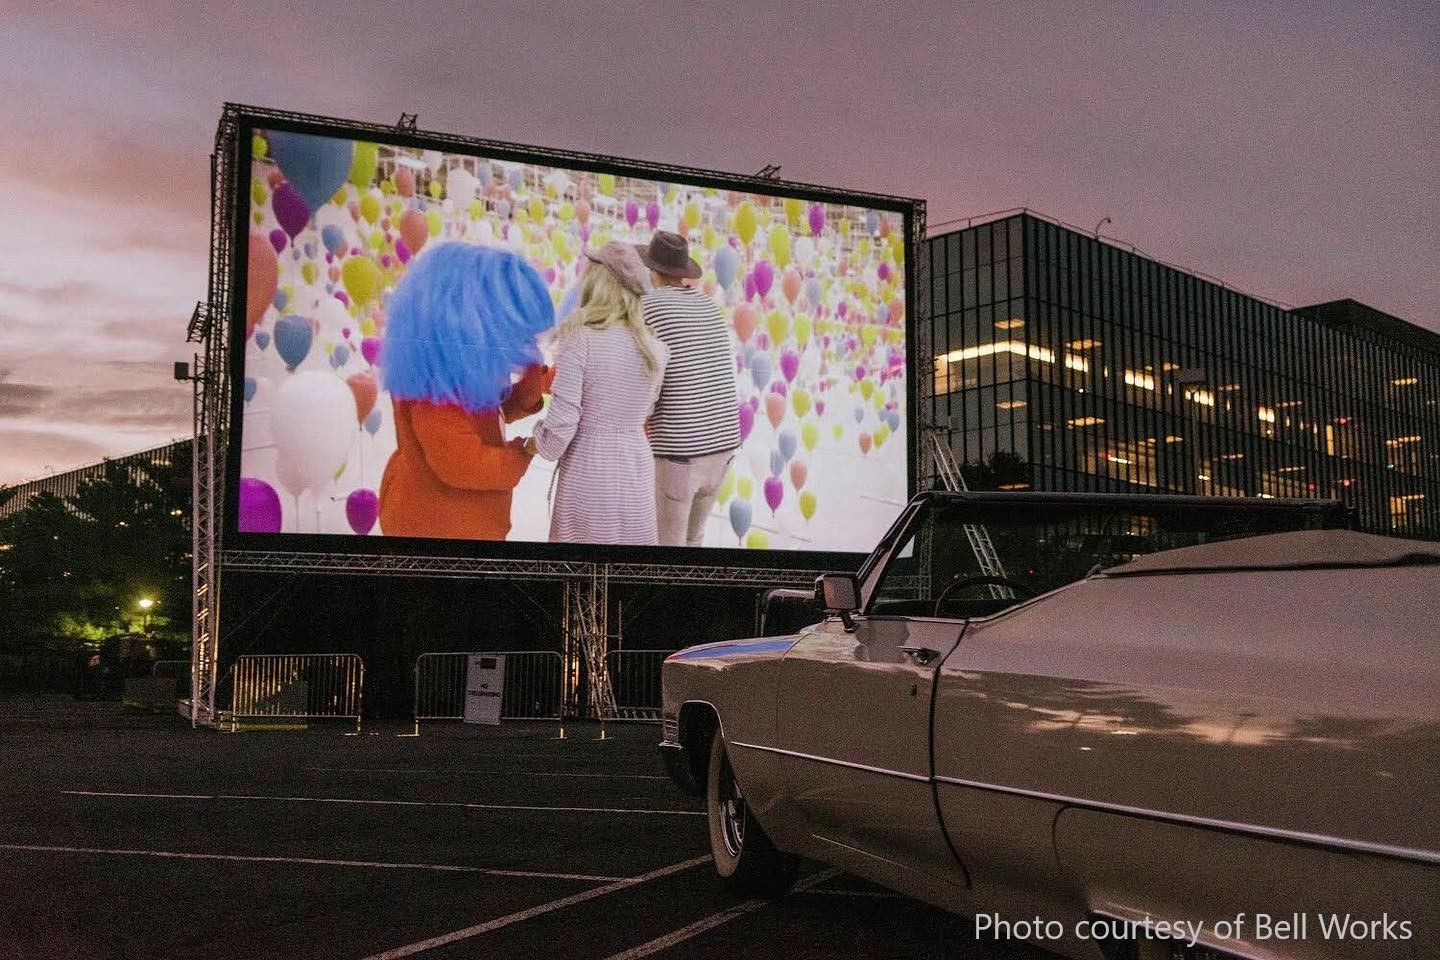 Bell Works Drive-in Movie Theater